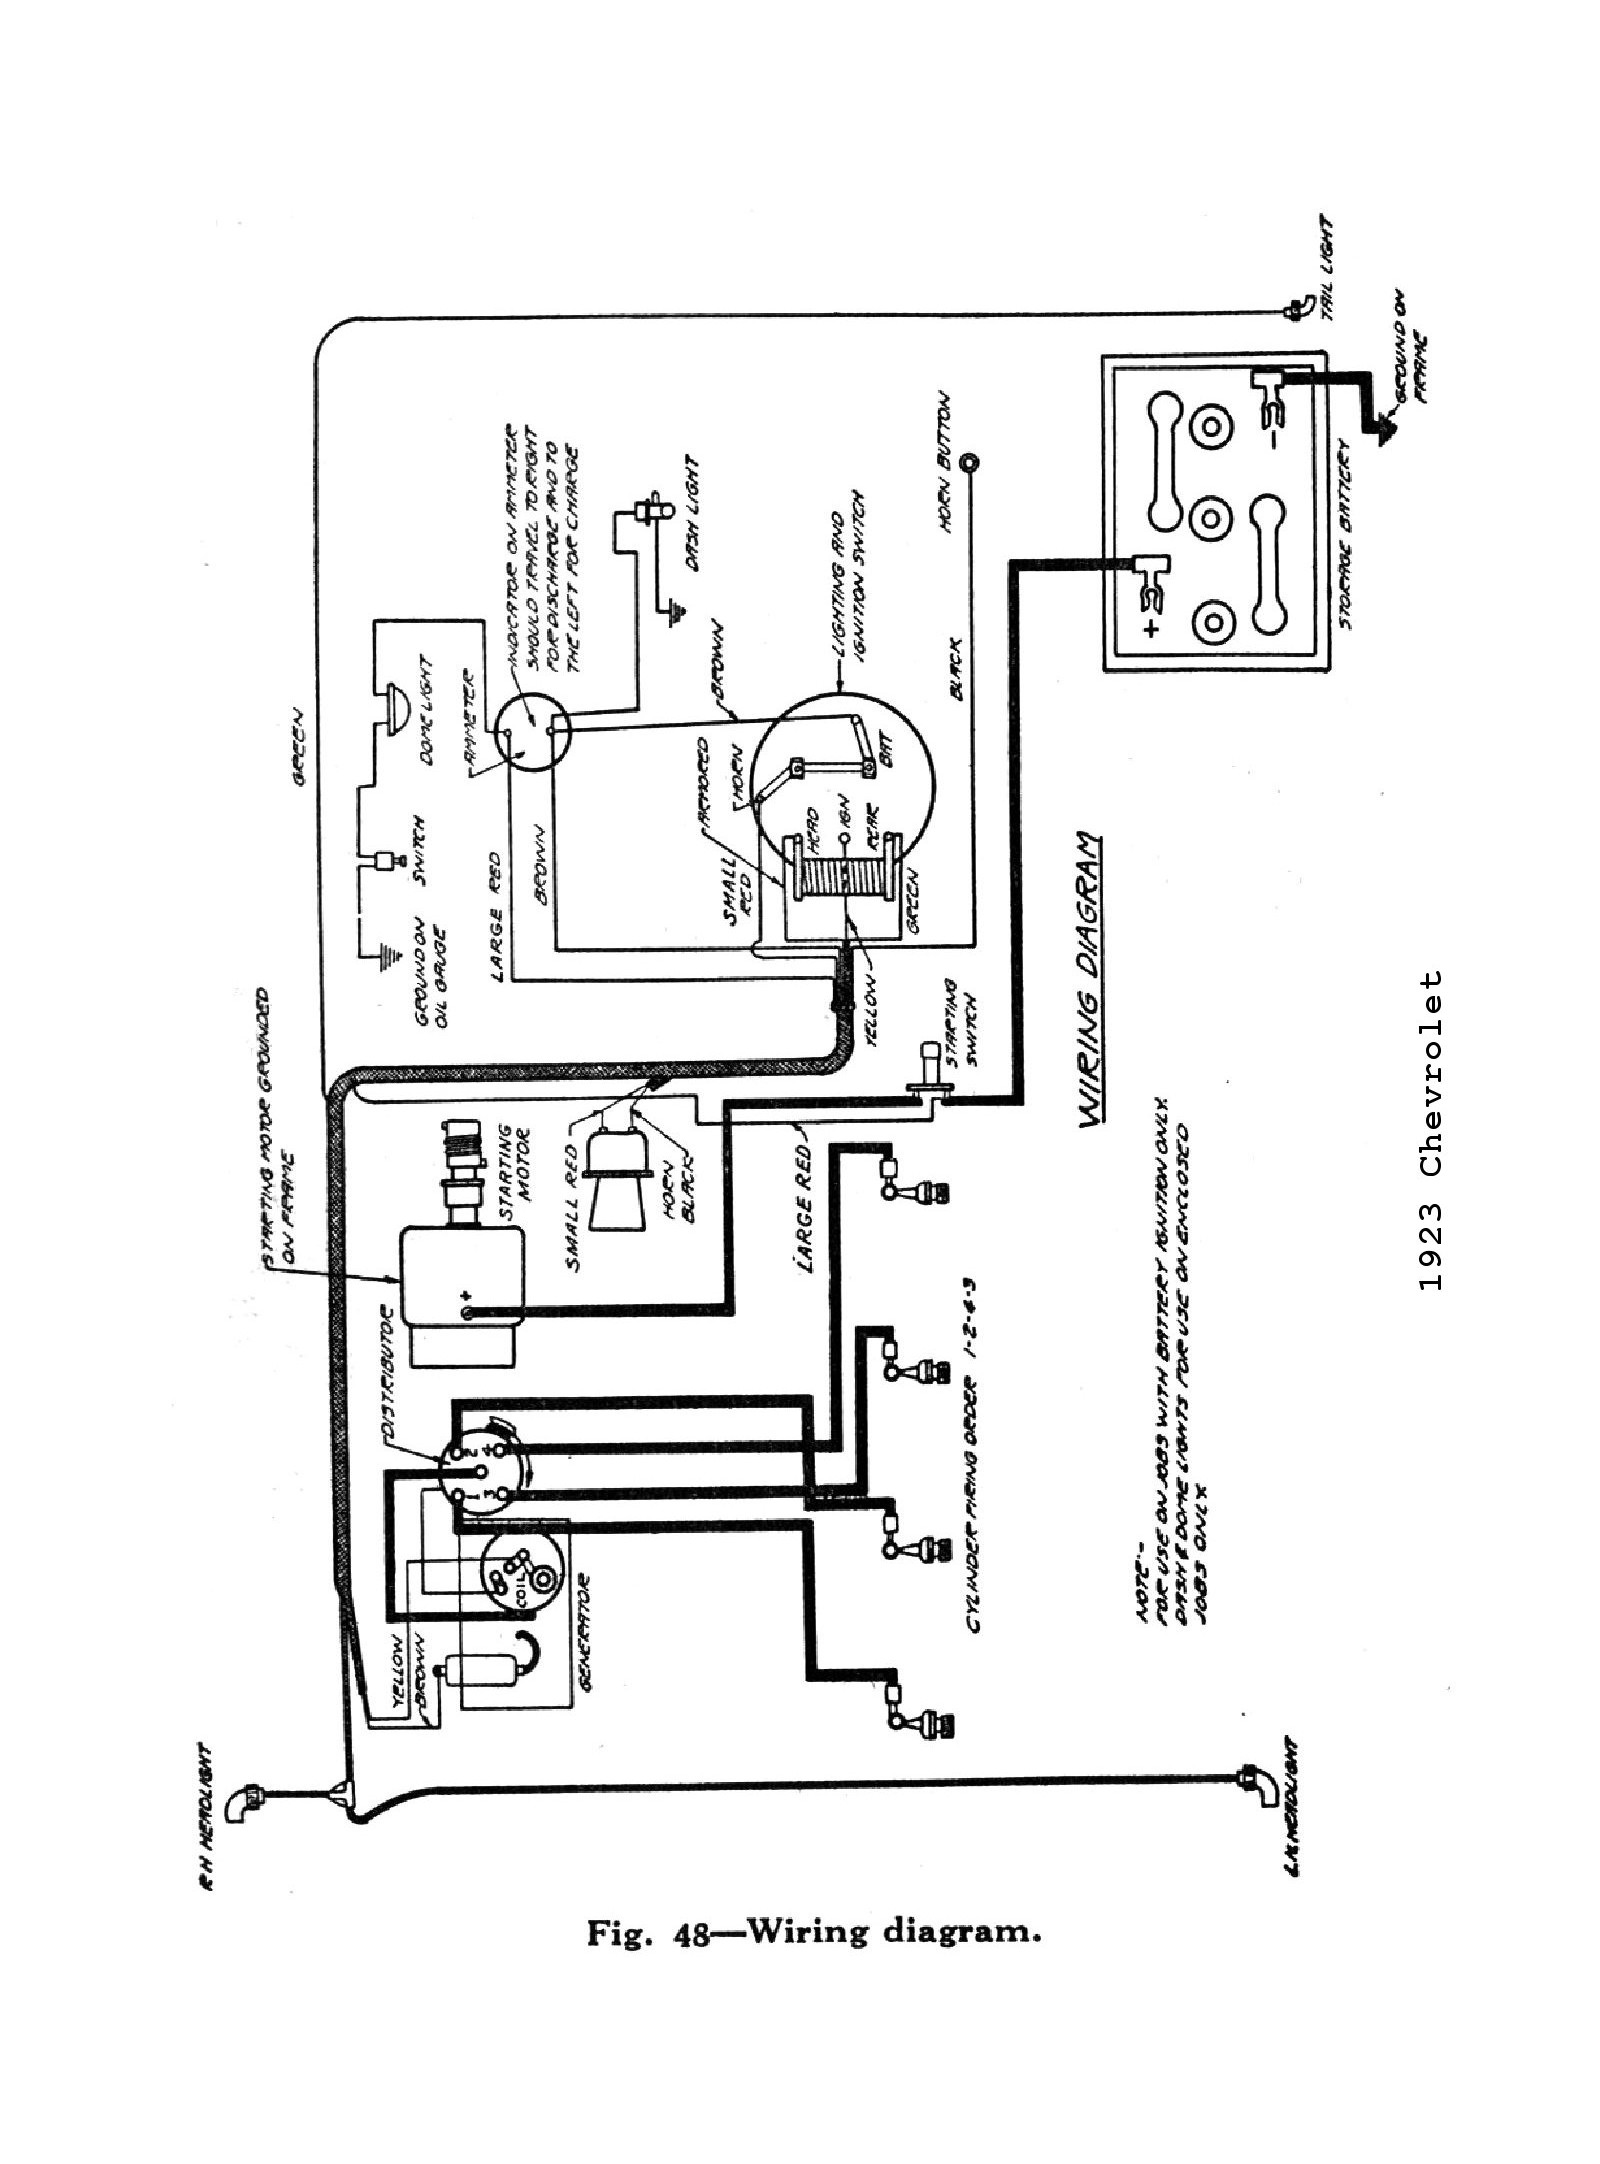 1955 Willys Wagon Wiring Diagram Free Picture Oil Burner Wiring Diagram Bege Wiring Diagram